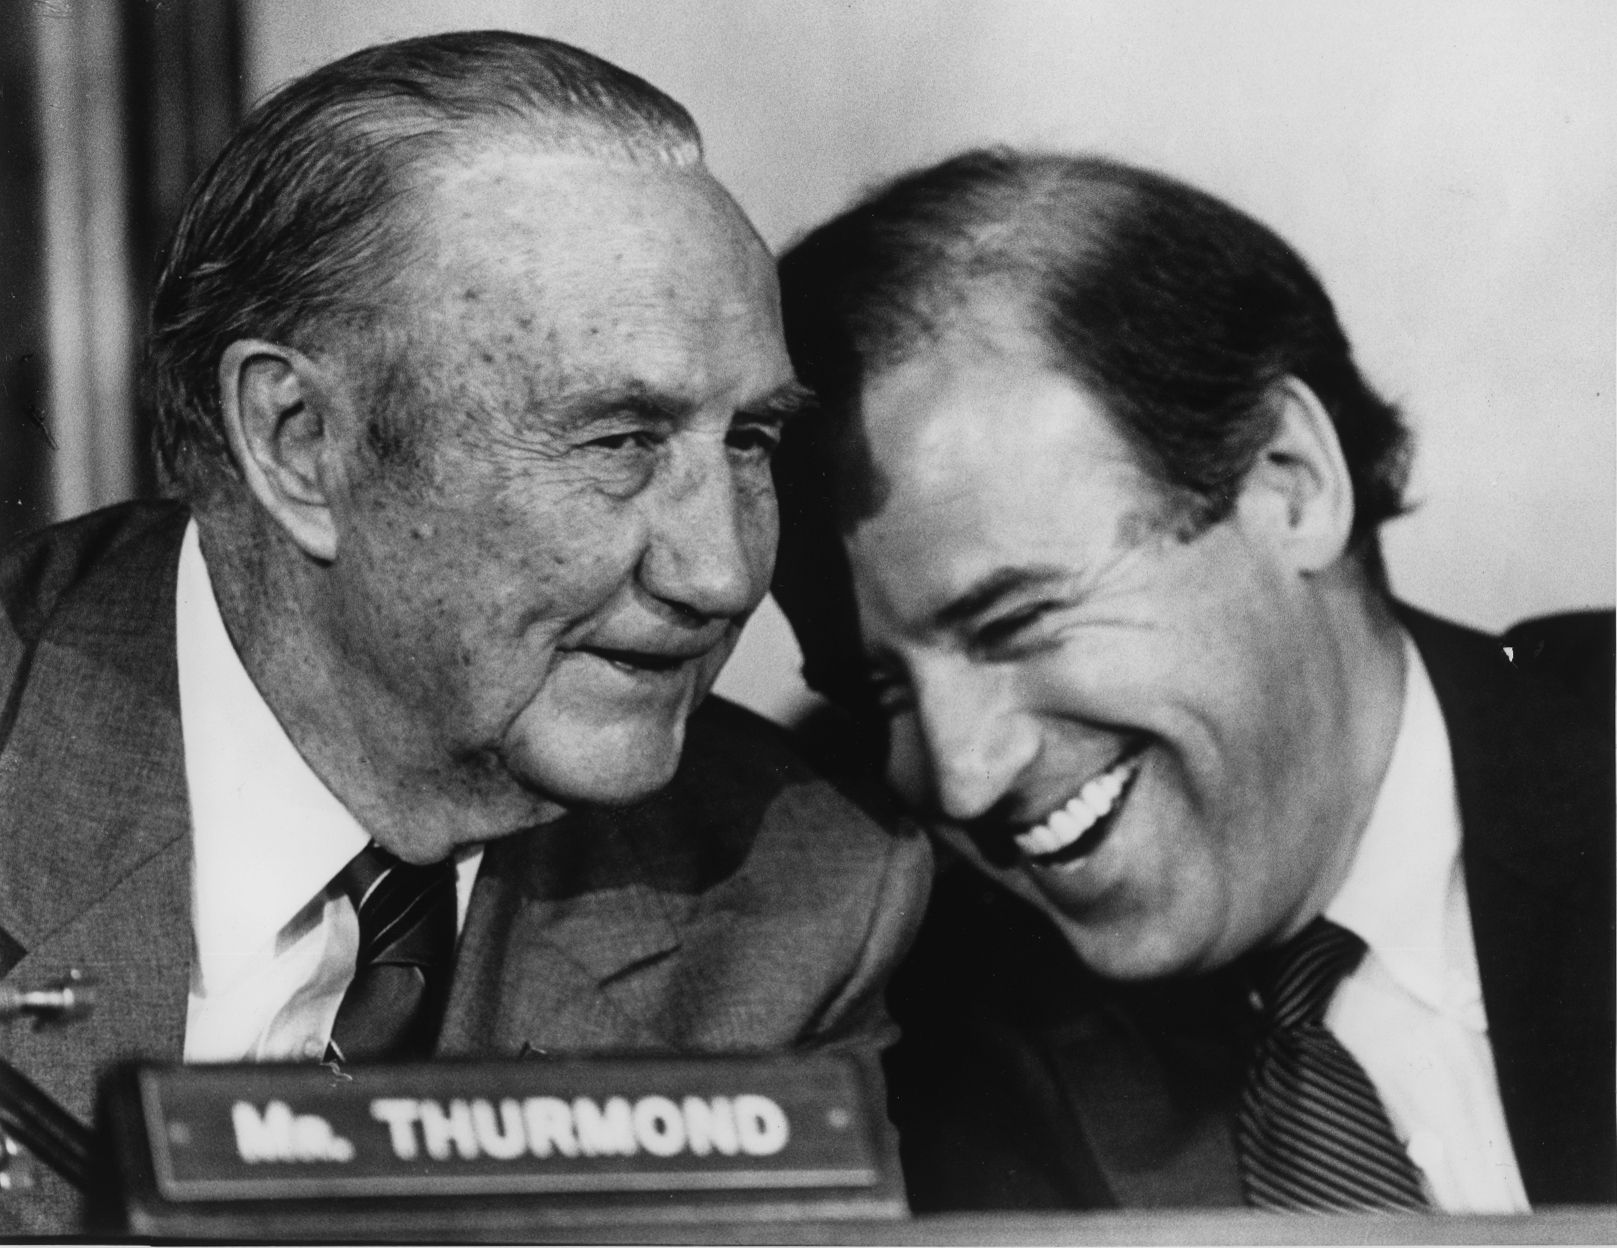 Opinion | Why is Strom Thurmond's name still on congressional ...